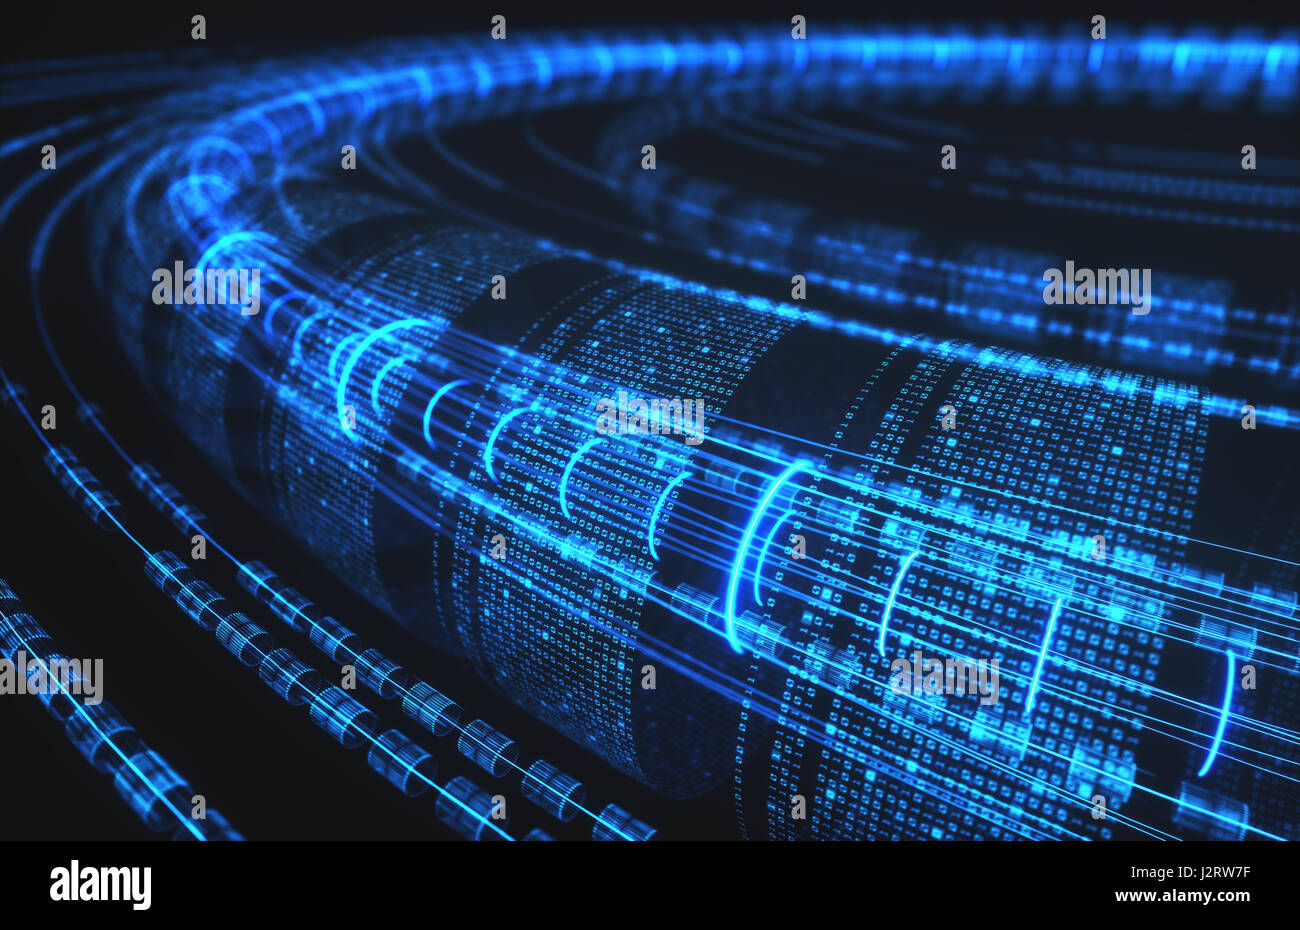 3D illustration, abstract background, technology concept. Binary tubes and connections. - Stock Image